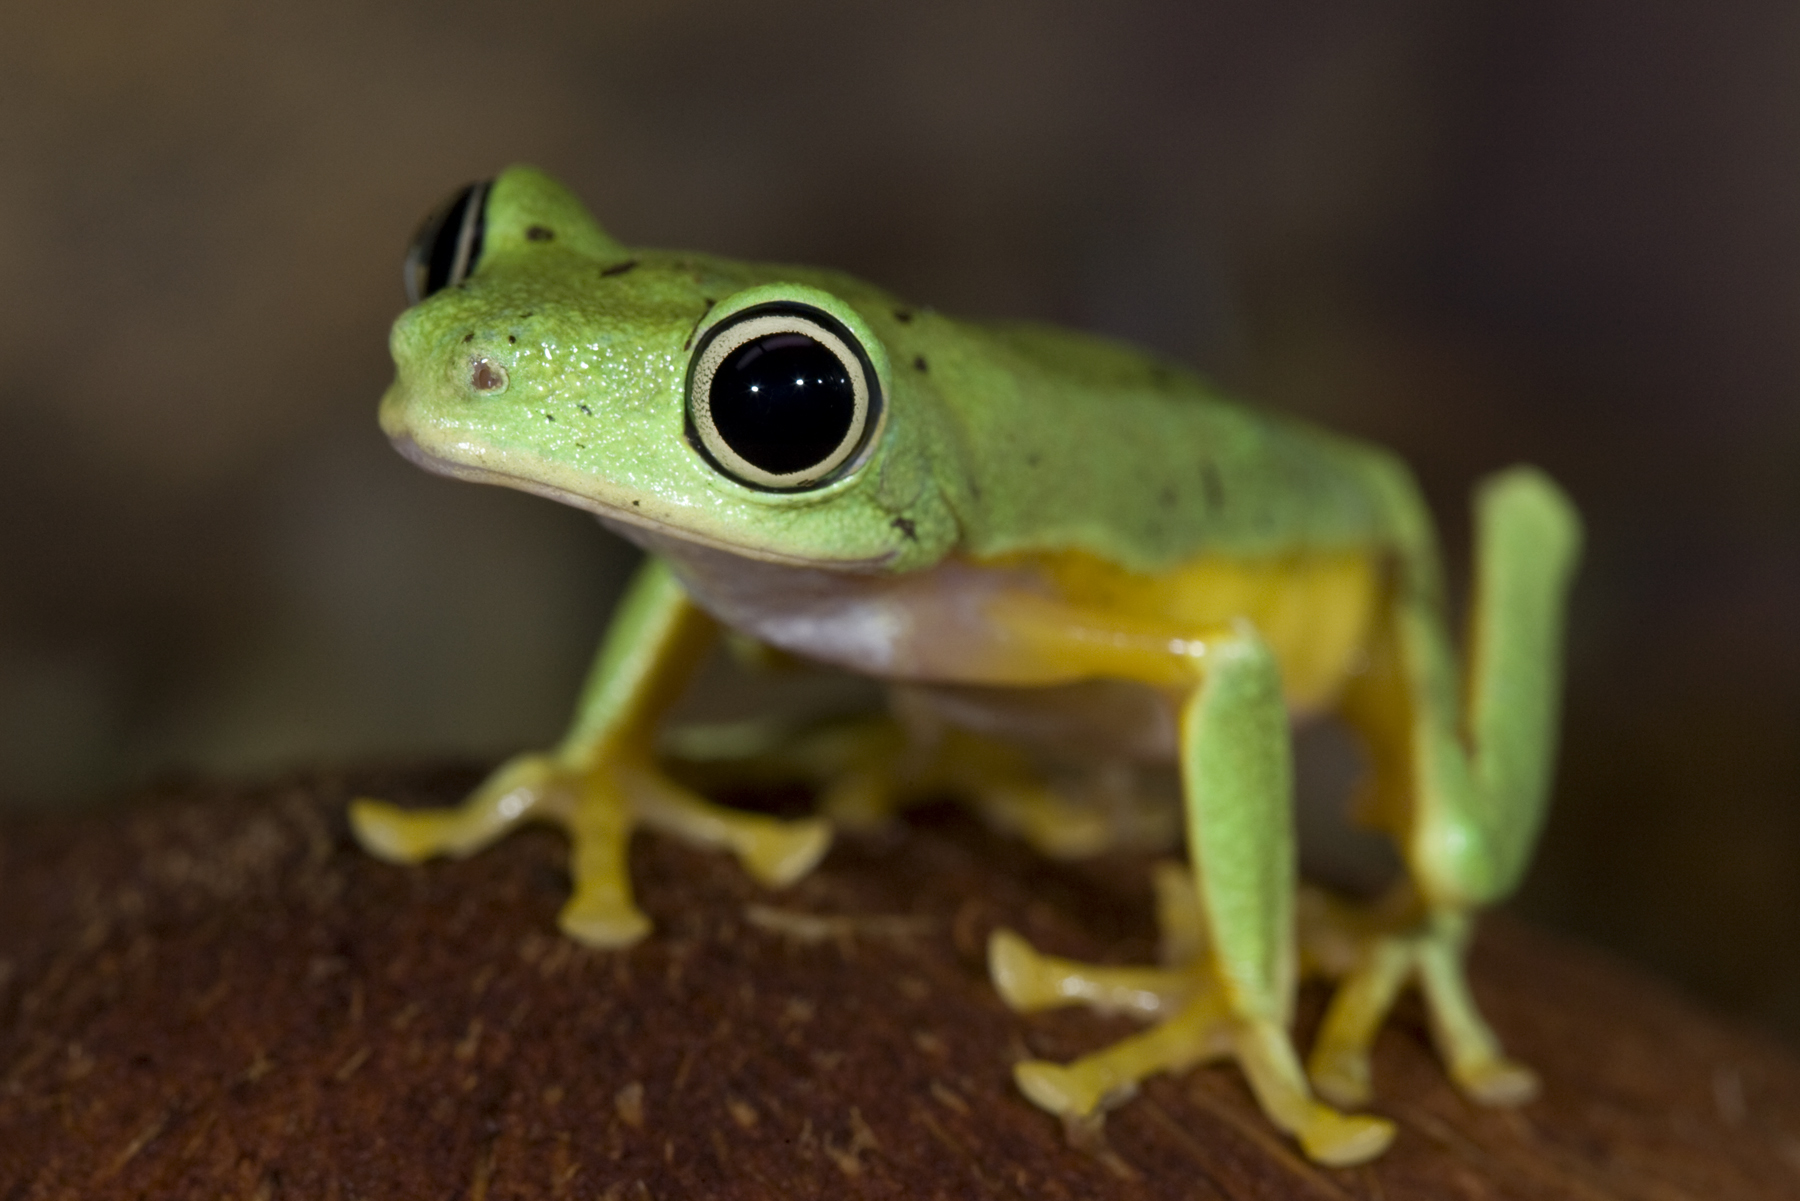 Lemur leaf frog (Hylomantis lemur)